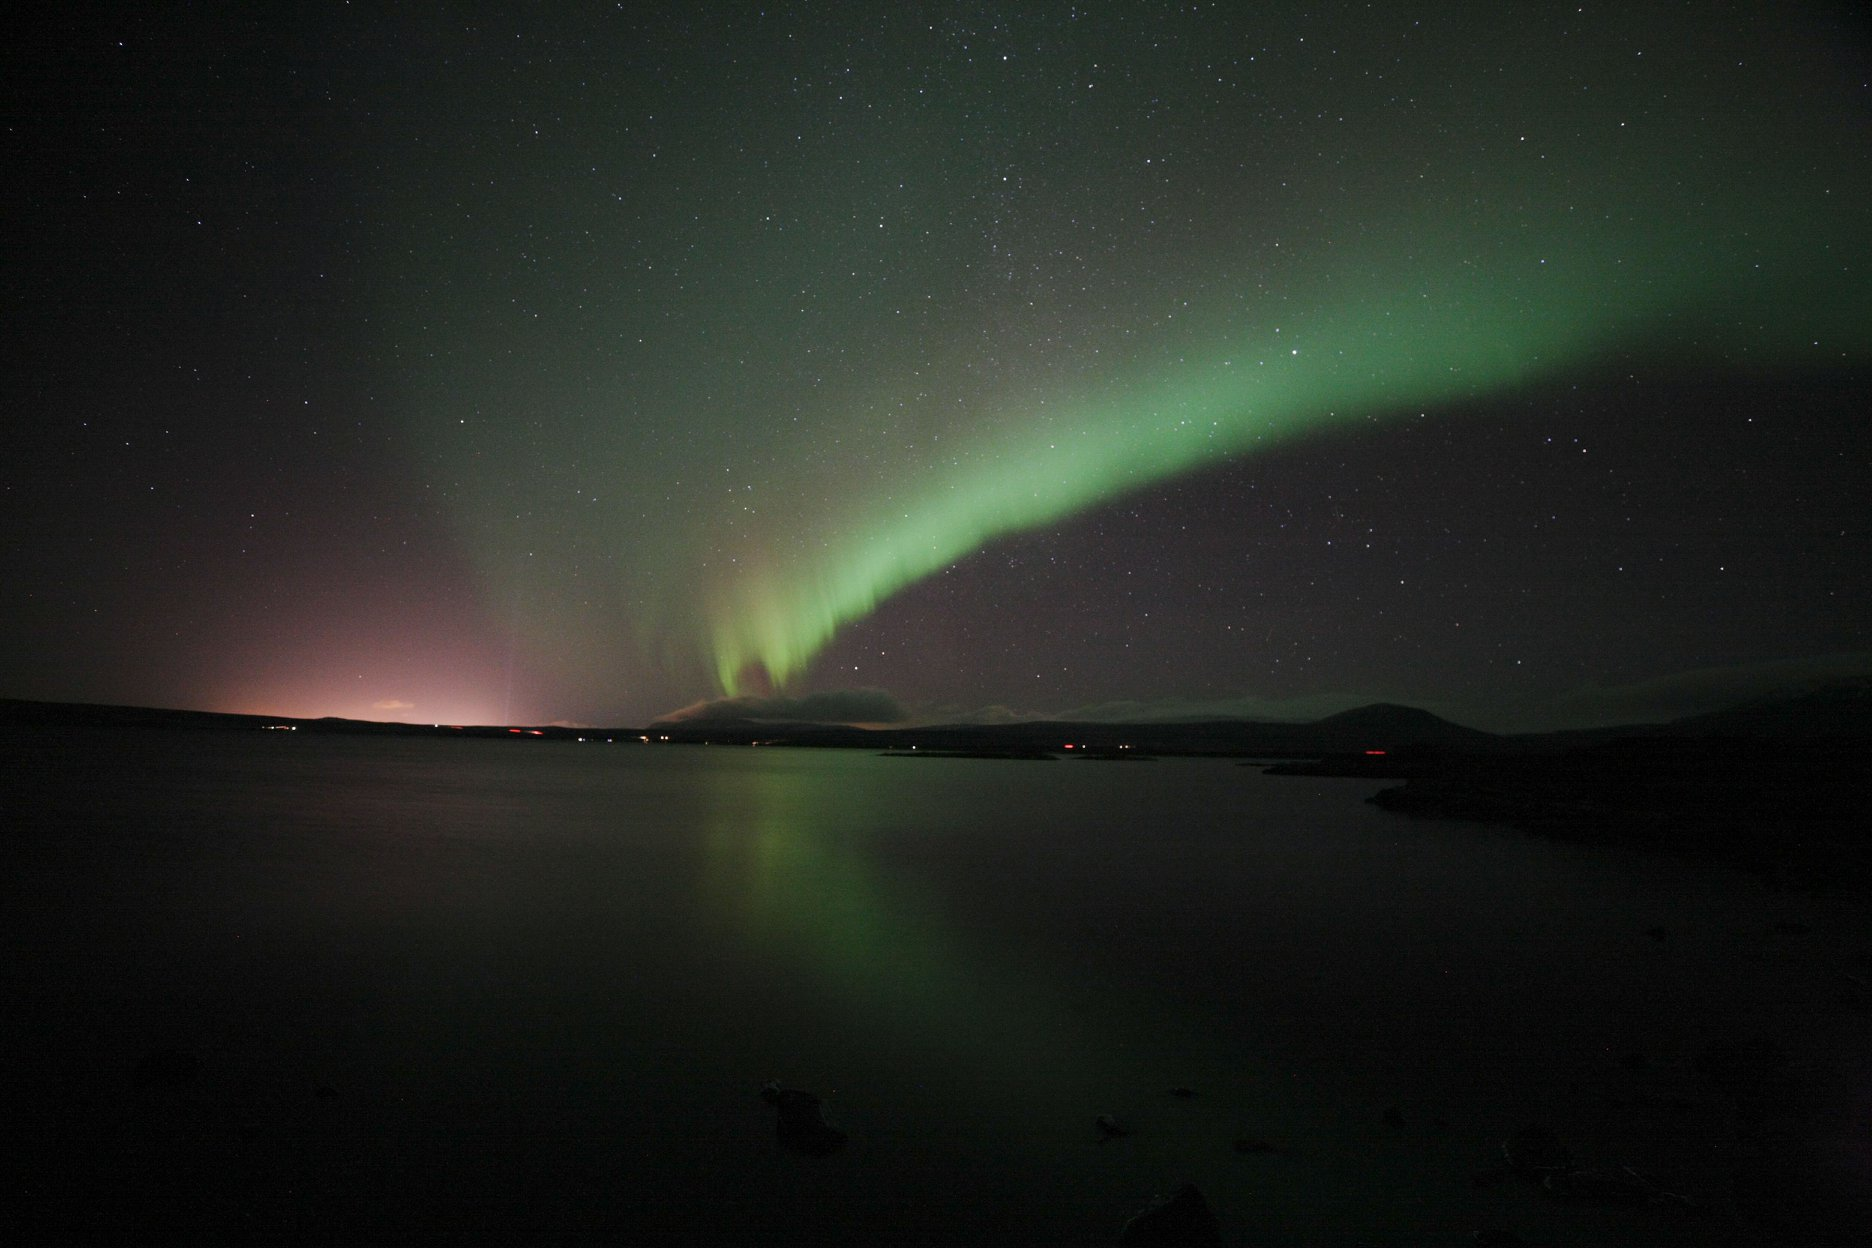 A blaze of green and pink northern lights forming int he sky.